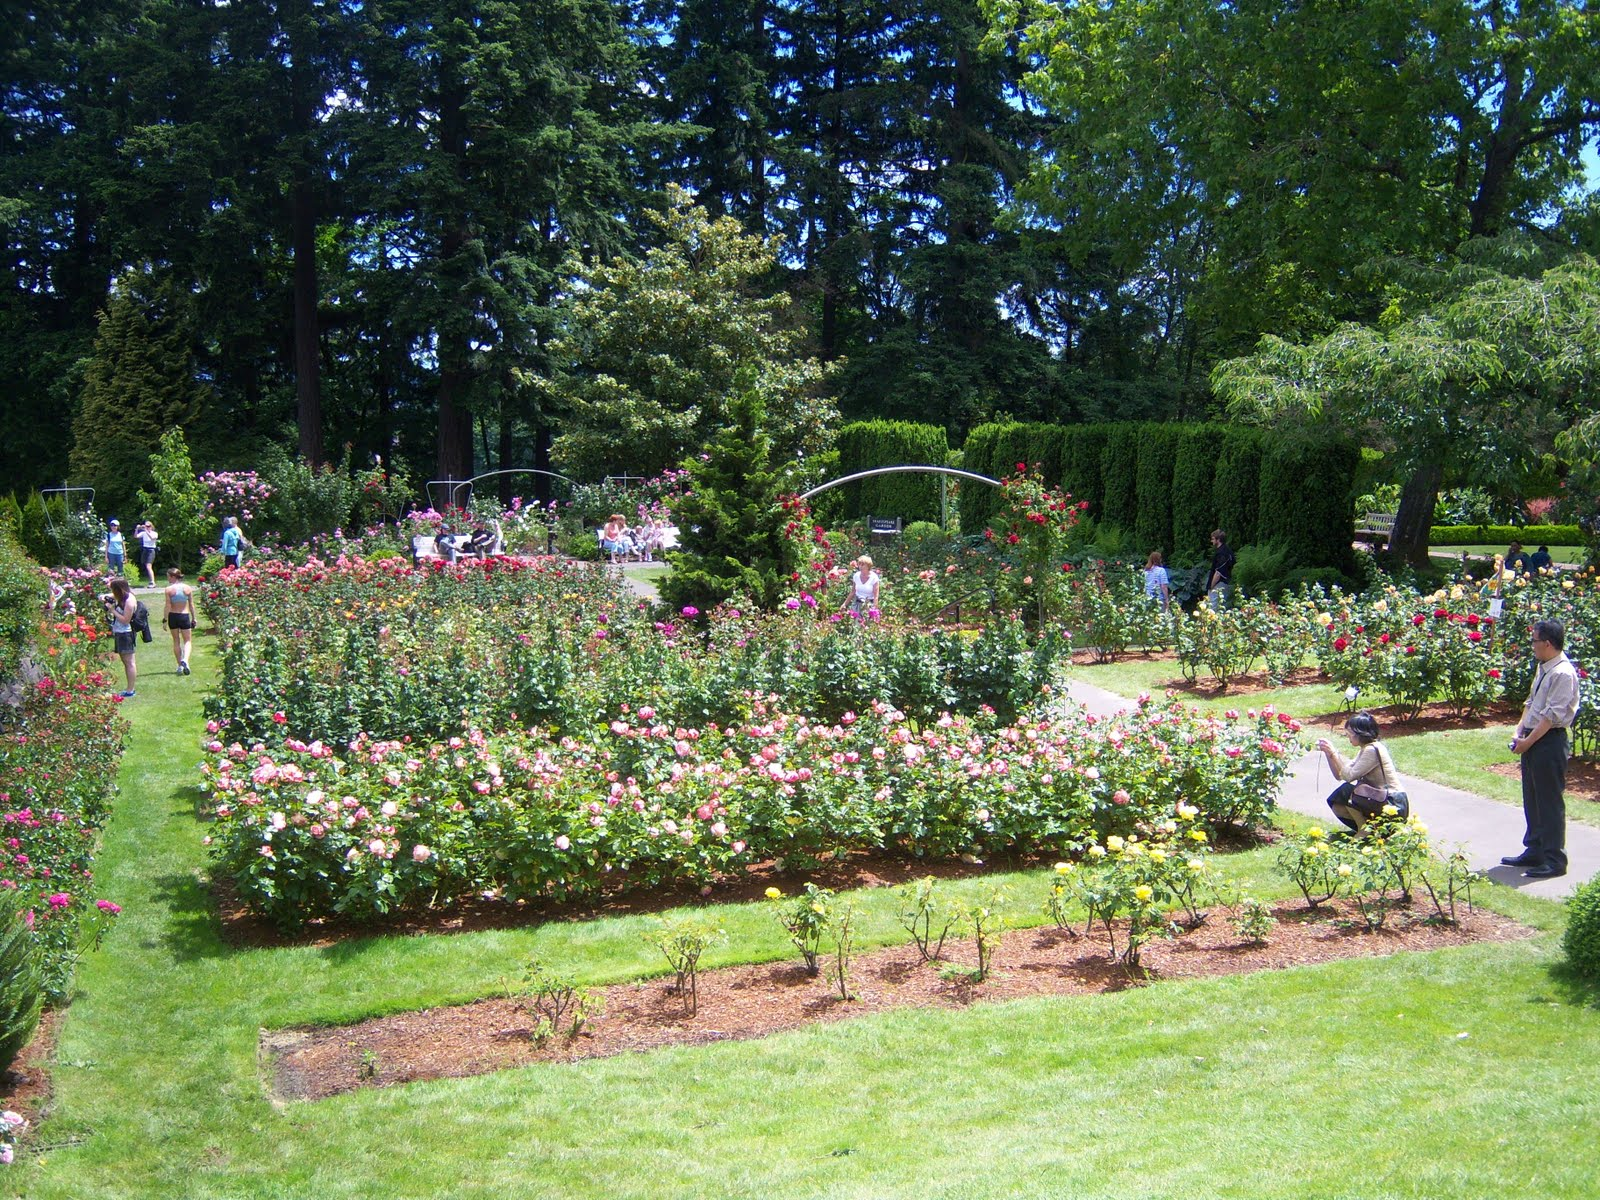 Most Beautiful Rose Gardens In The World searching for rosebud: the most beautiful rose garden in the world